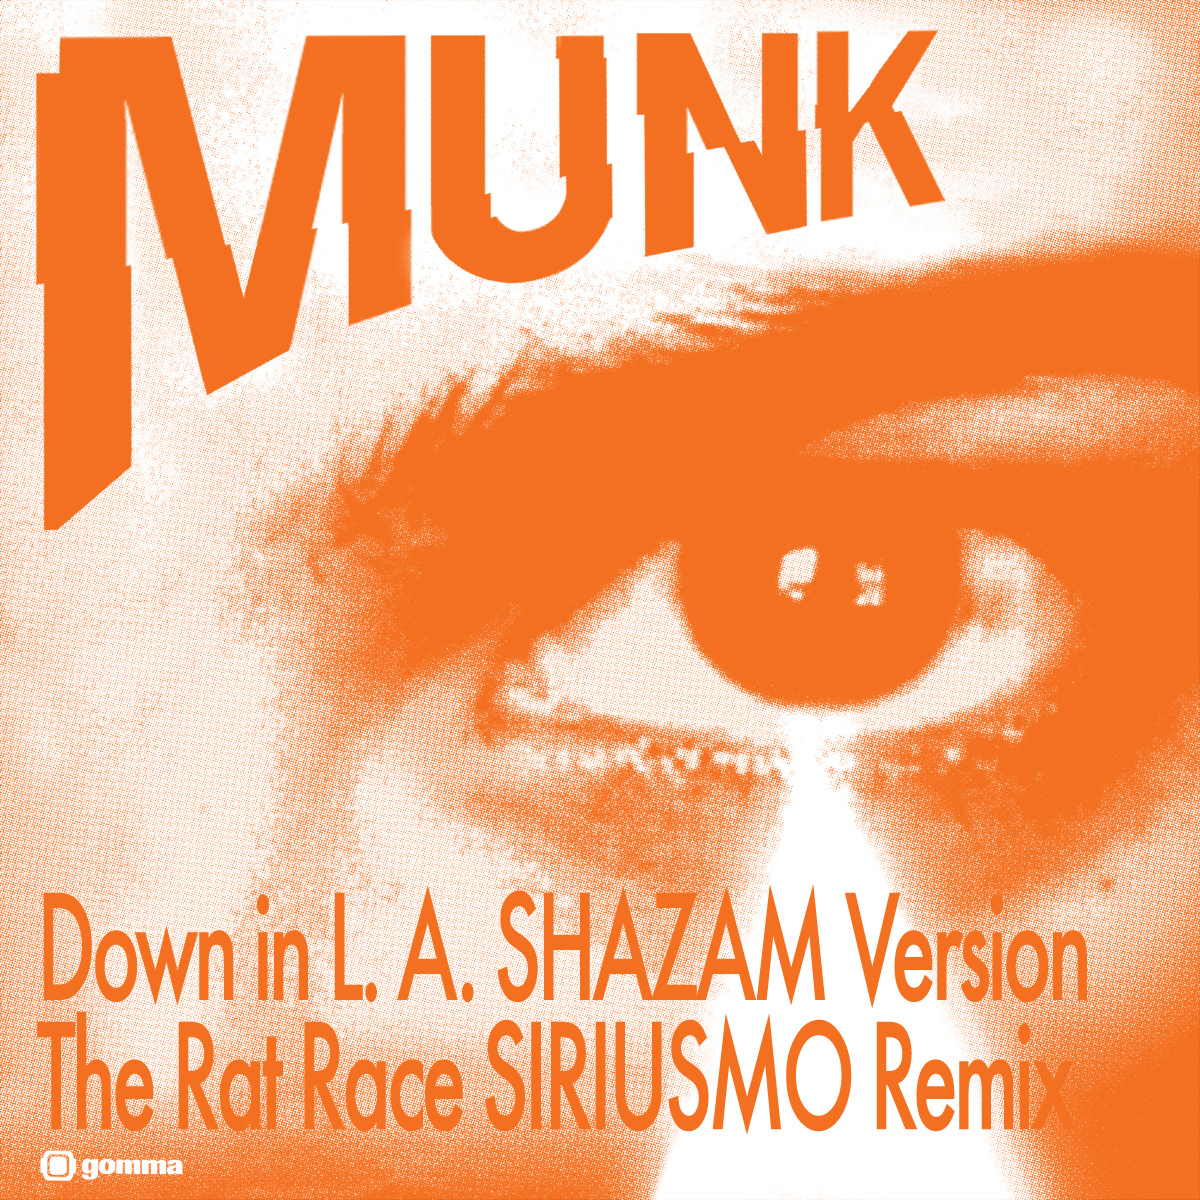 Munk - Down In L.A. / The Rat Race RMXs